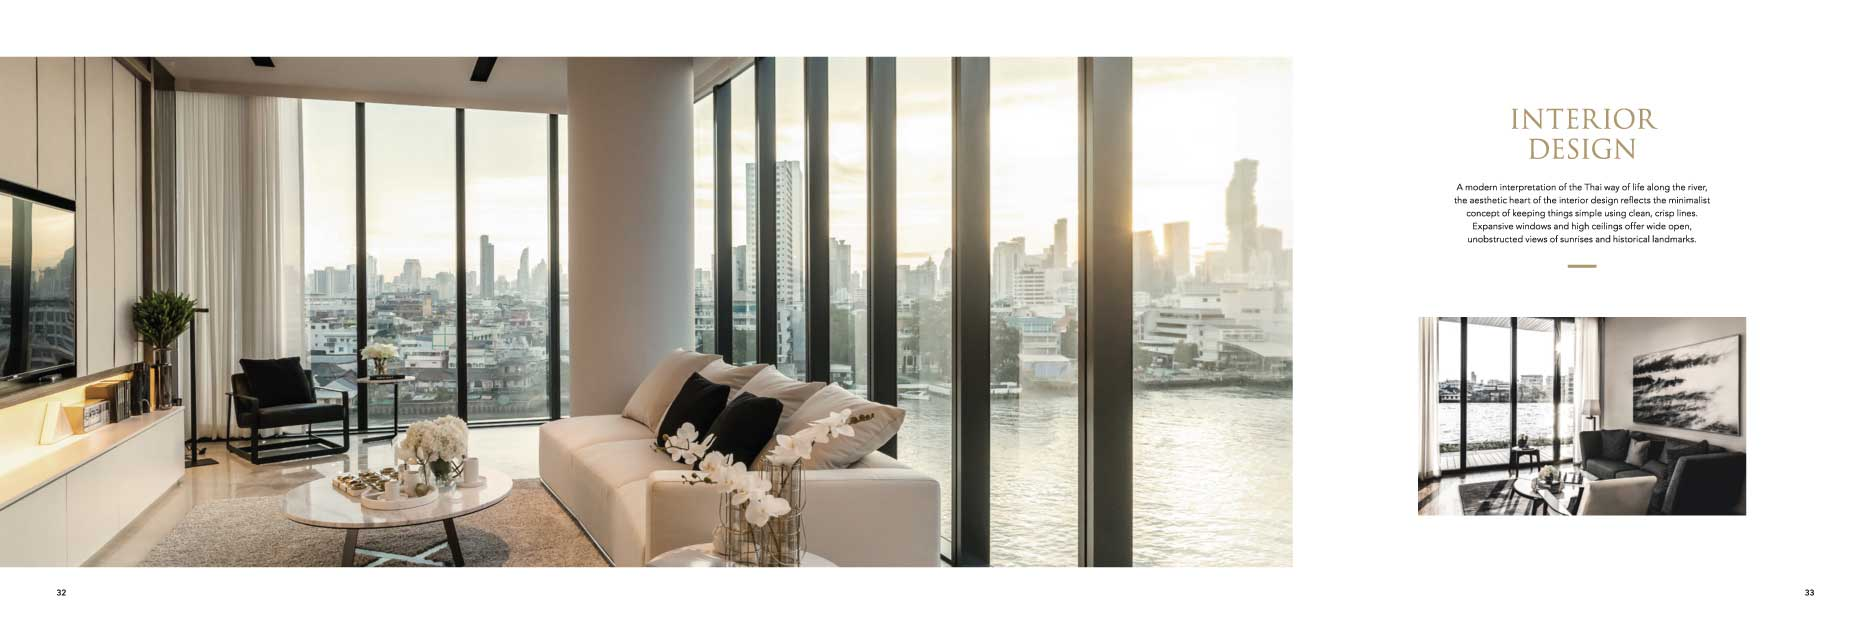 Banyan Tree Residences Riverside Bangkok Brochure 24